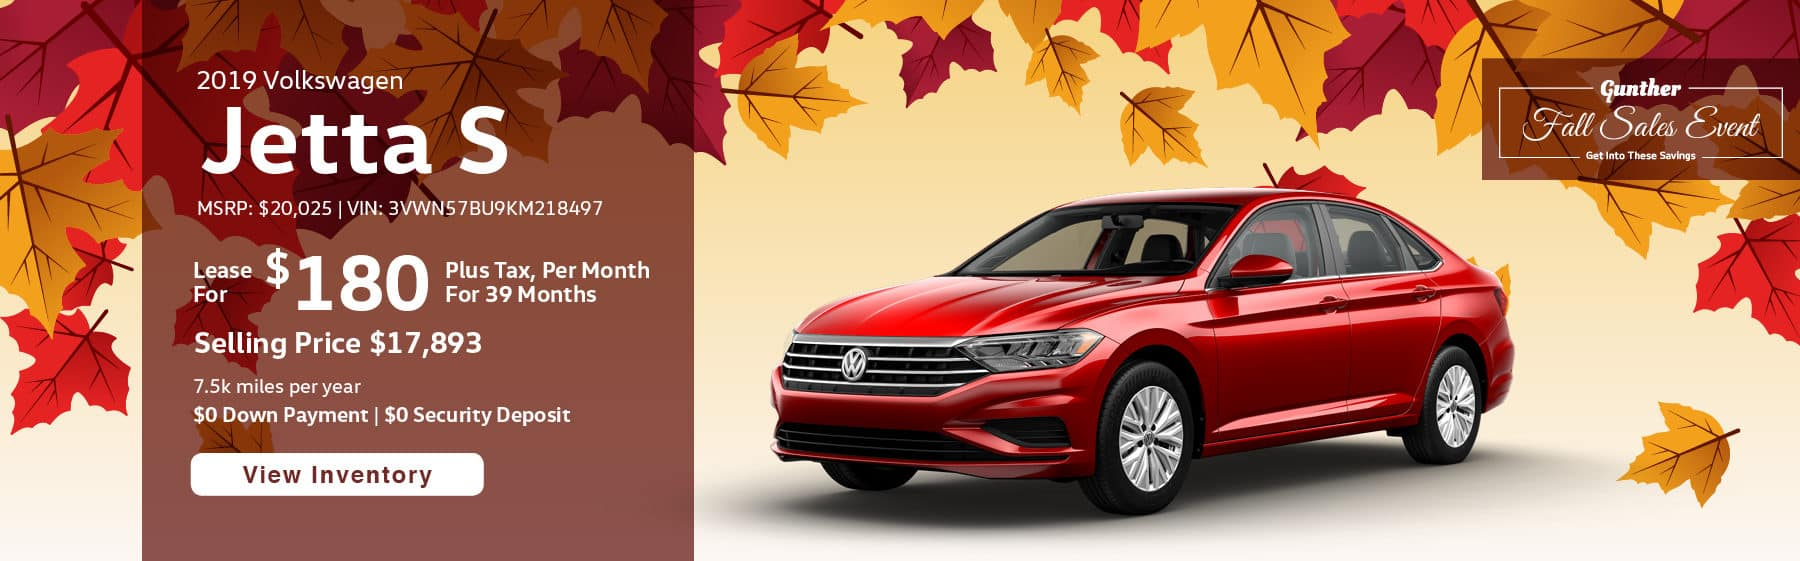 Lease the 2019 Jetta S for $180 per month, plus tax for 39 months.